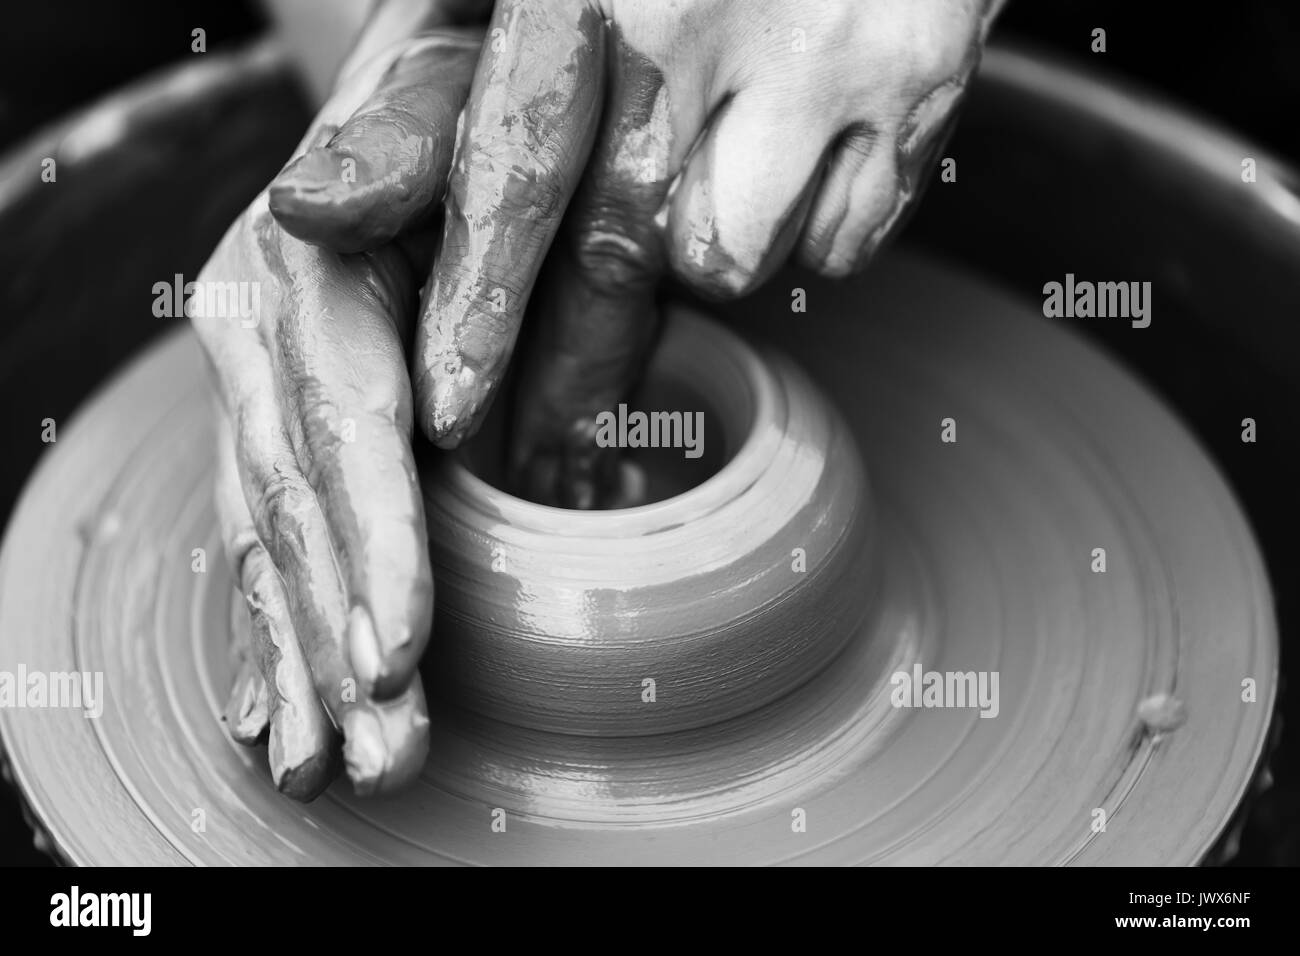 Hands of a potter. Potter making ceramic pot on the pottery wheel - Stock Image